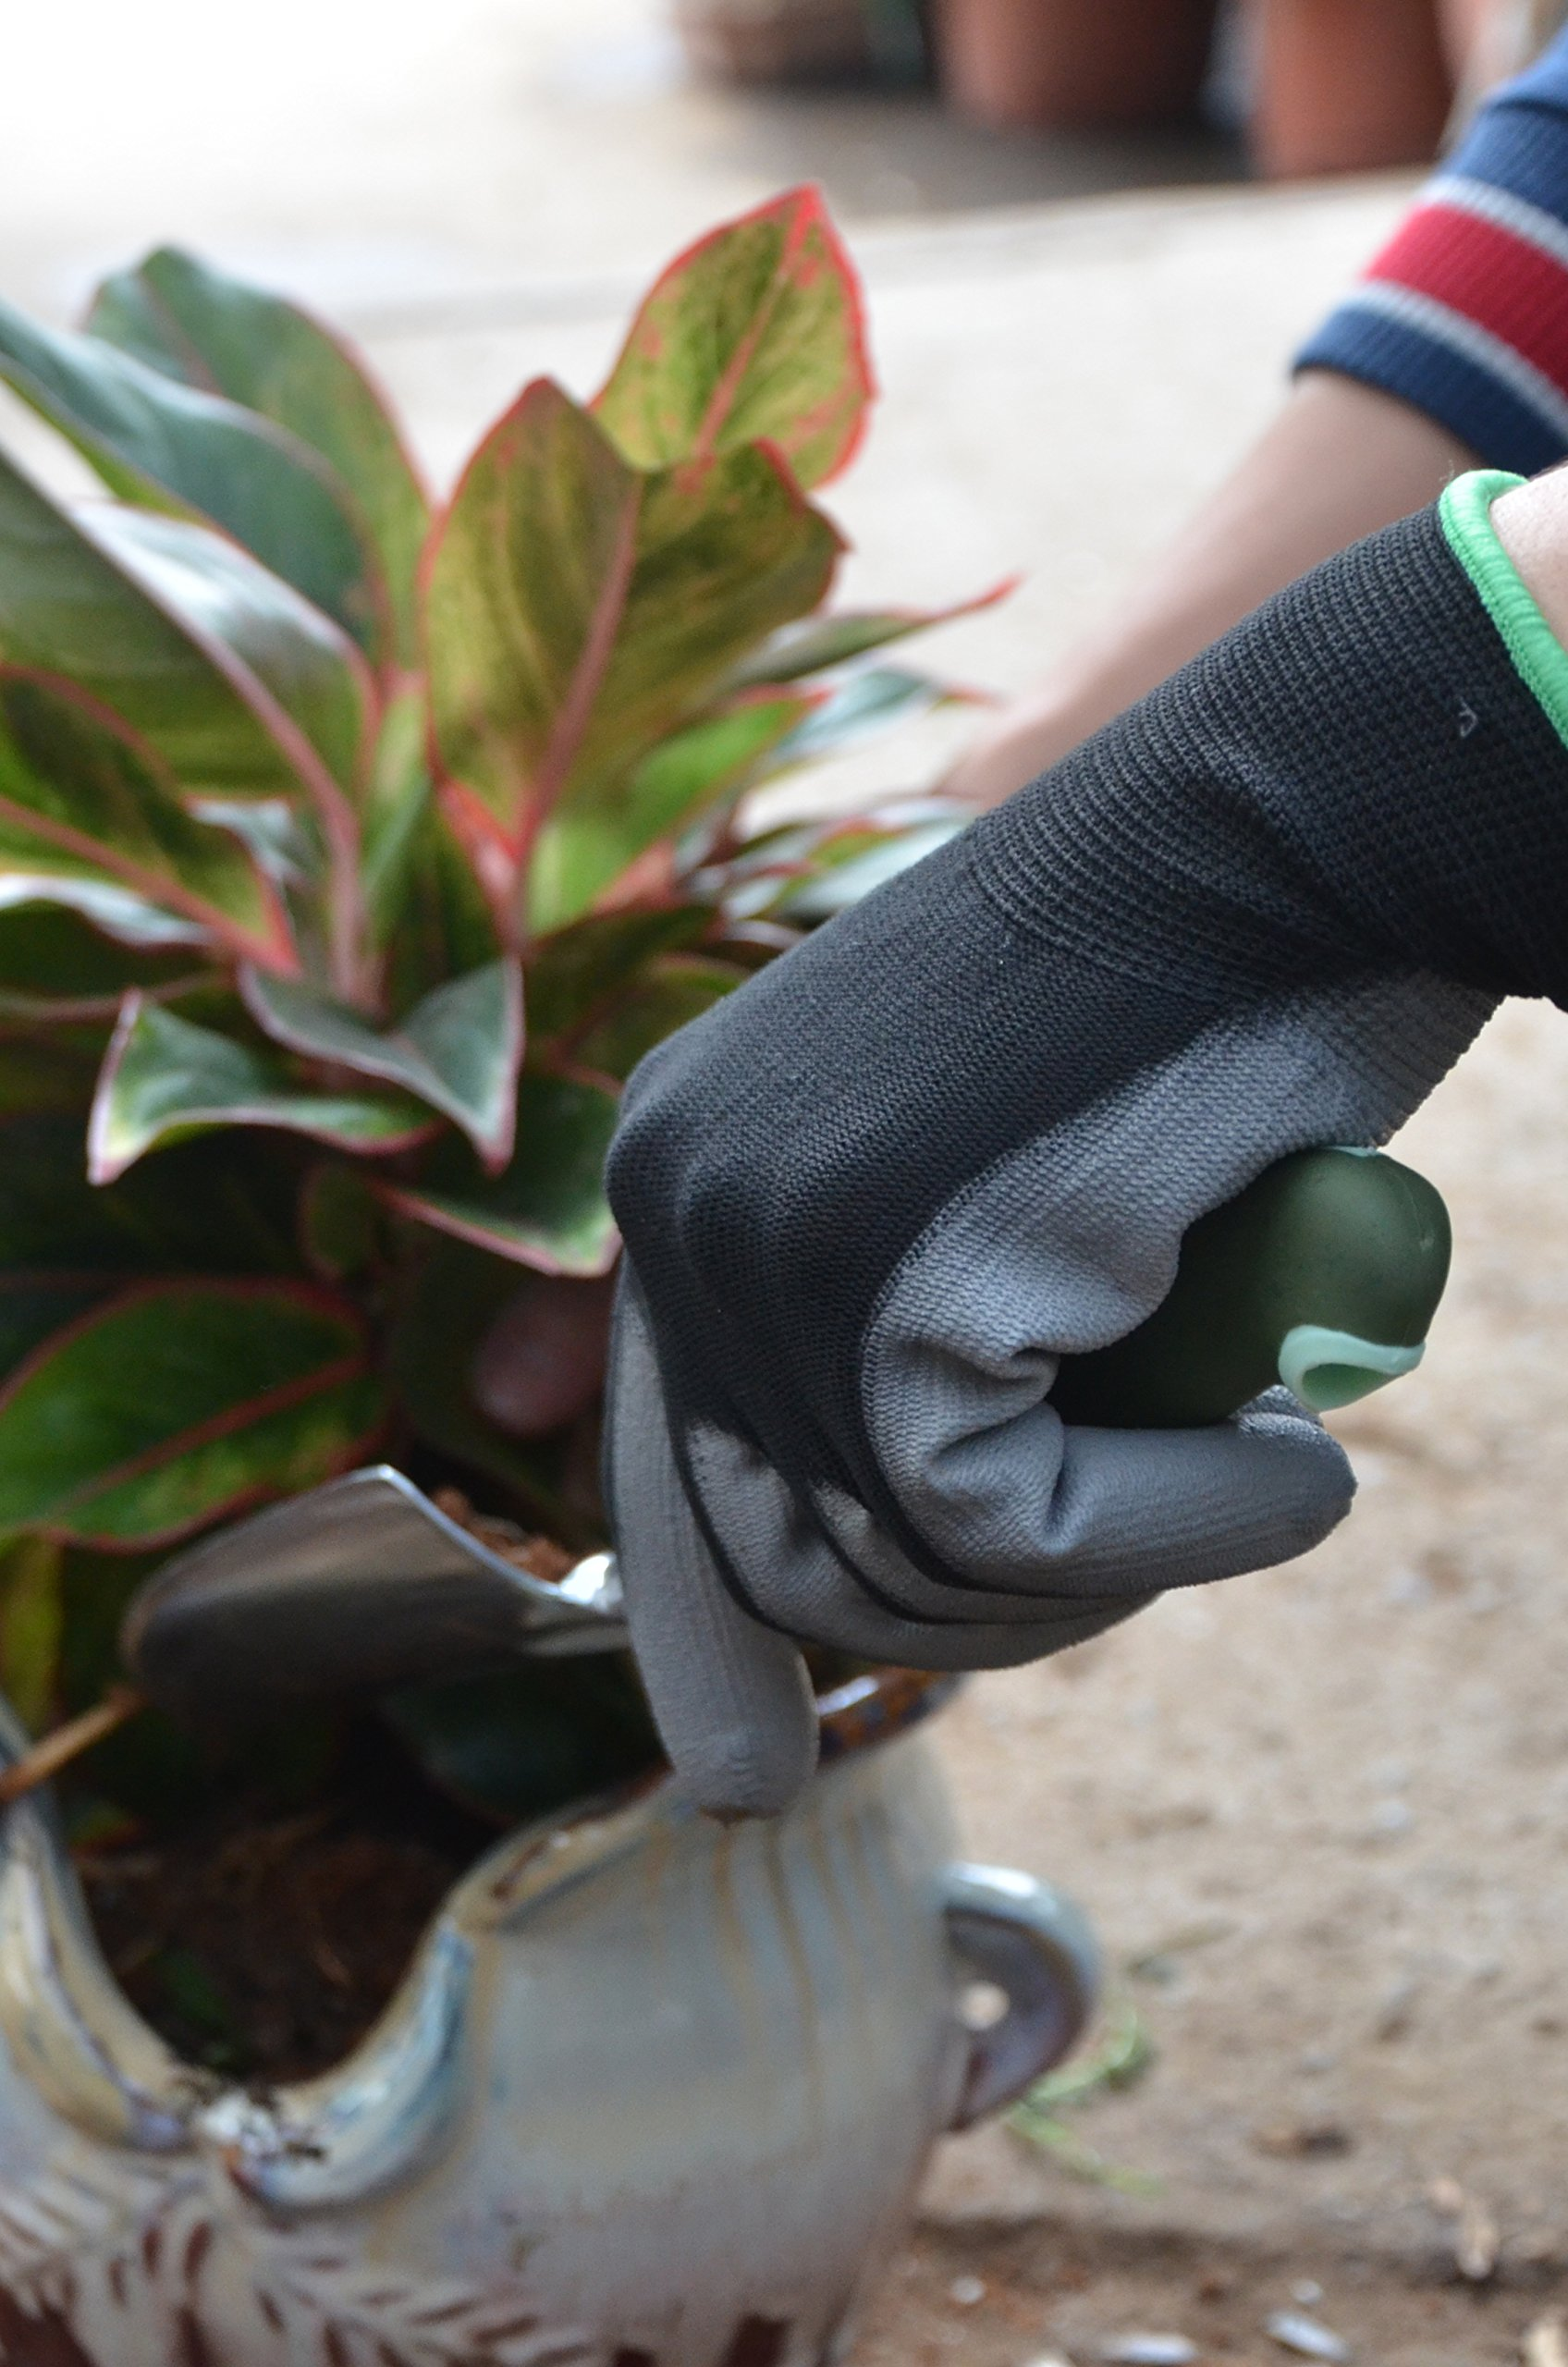 Vgo… PU Coated Gardening and Work Gloves (15 Pairs, Black Color, Size 9/L and 10/XL) by Vgo... (Image #4)